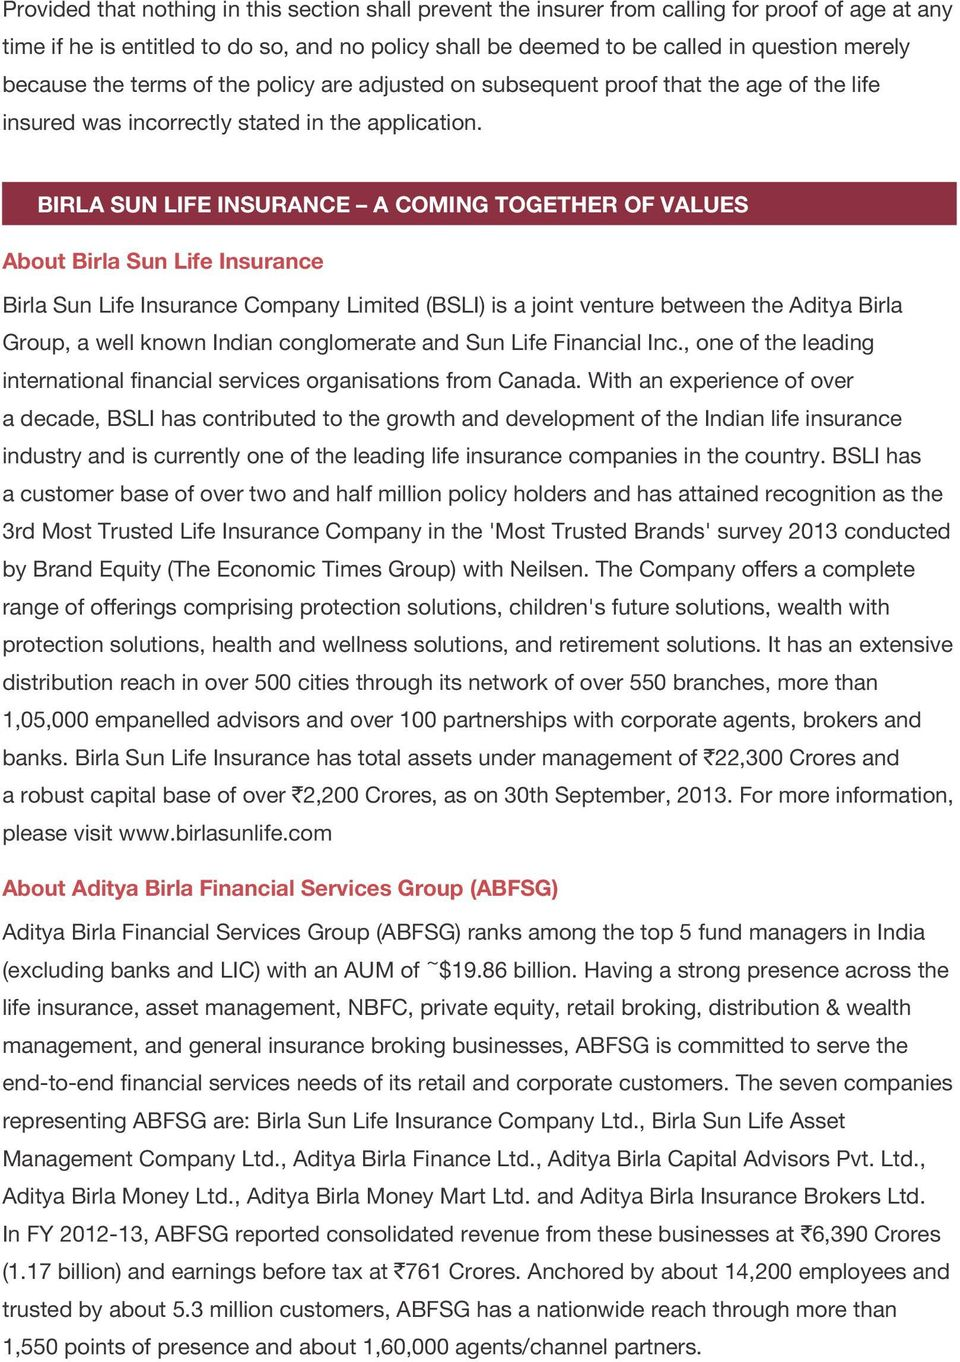 BIRLA SUN LIFE INSURANCE A COMING TOGETHER OF VALUES About Birla Sun Life Insurance Birla Sun Life Insurance Company Limited (BSLI) is a joint venture between the Aditya Birla Group, a well known